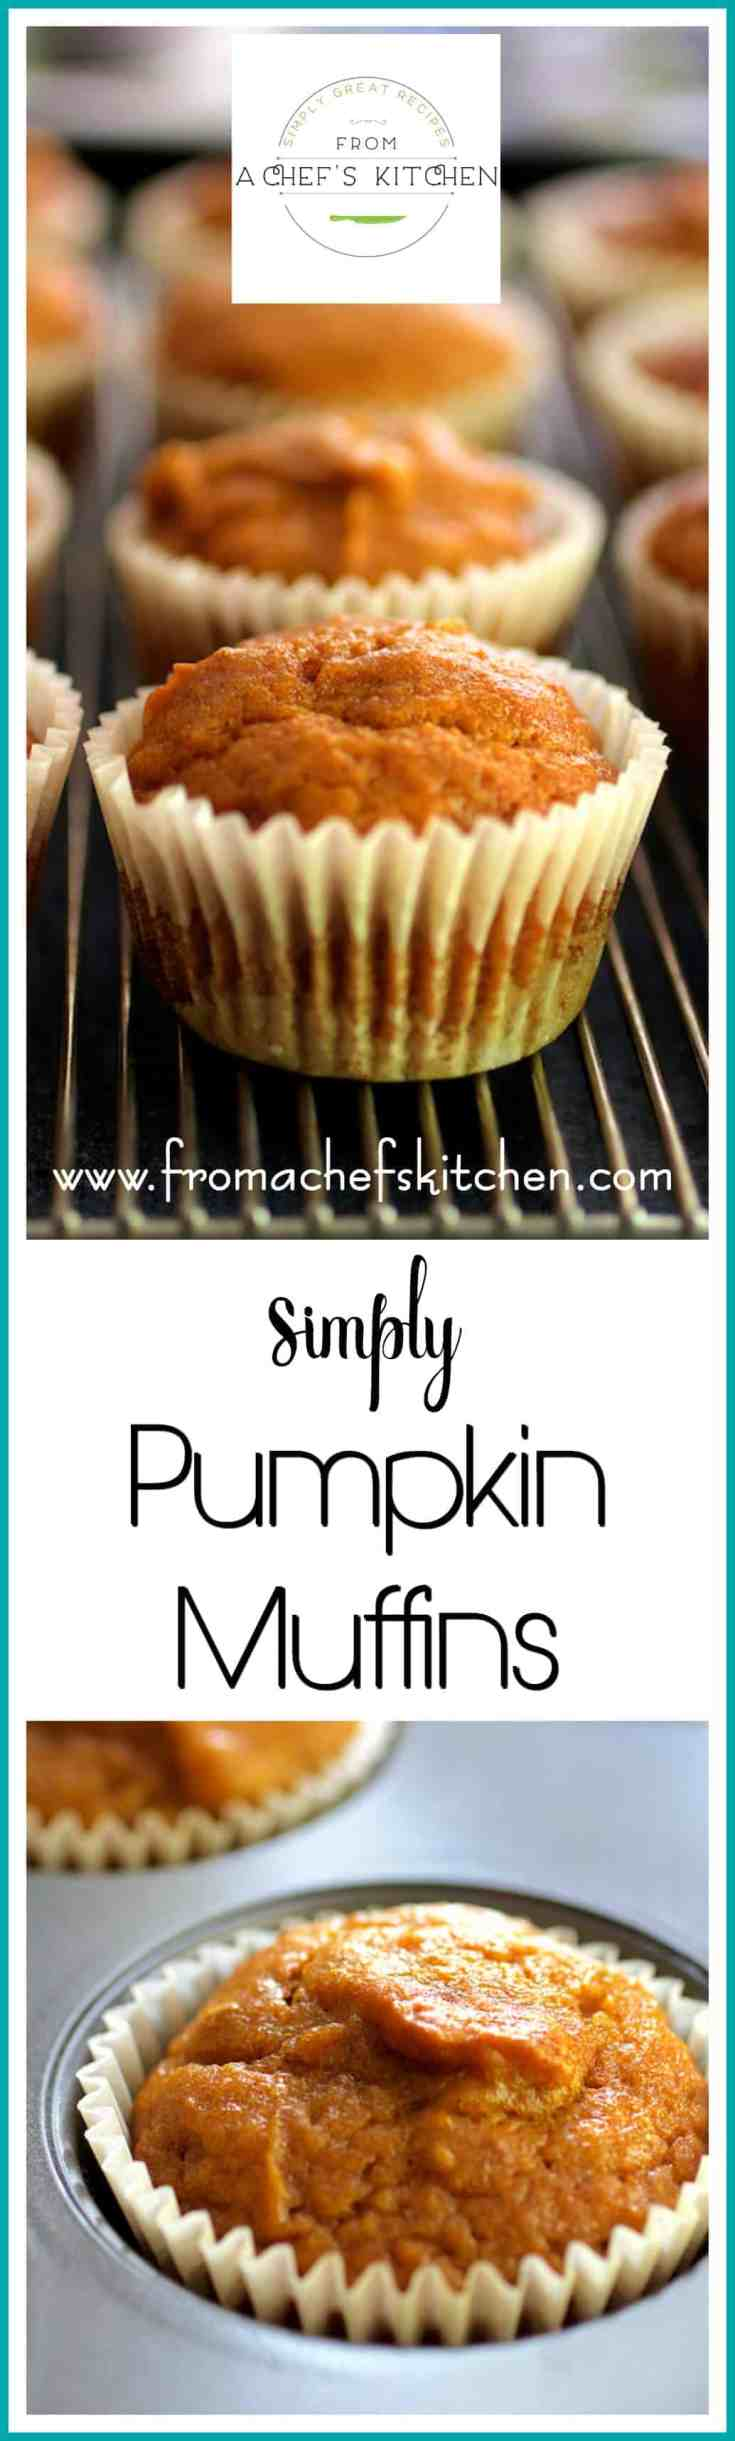 Simply Pumpkin Muffins are easy to make, deliciously light and uncomplicated with all the fall pumpkin flavor you love! #pumpkin #pumpkinmuffins #muffins #baking